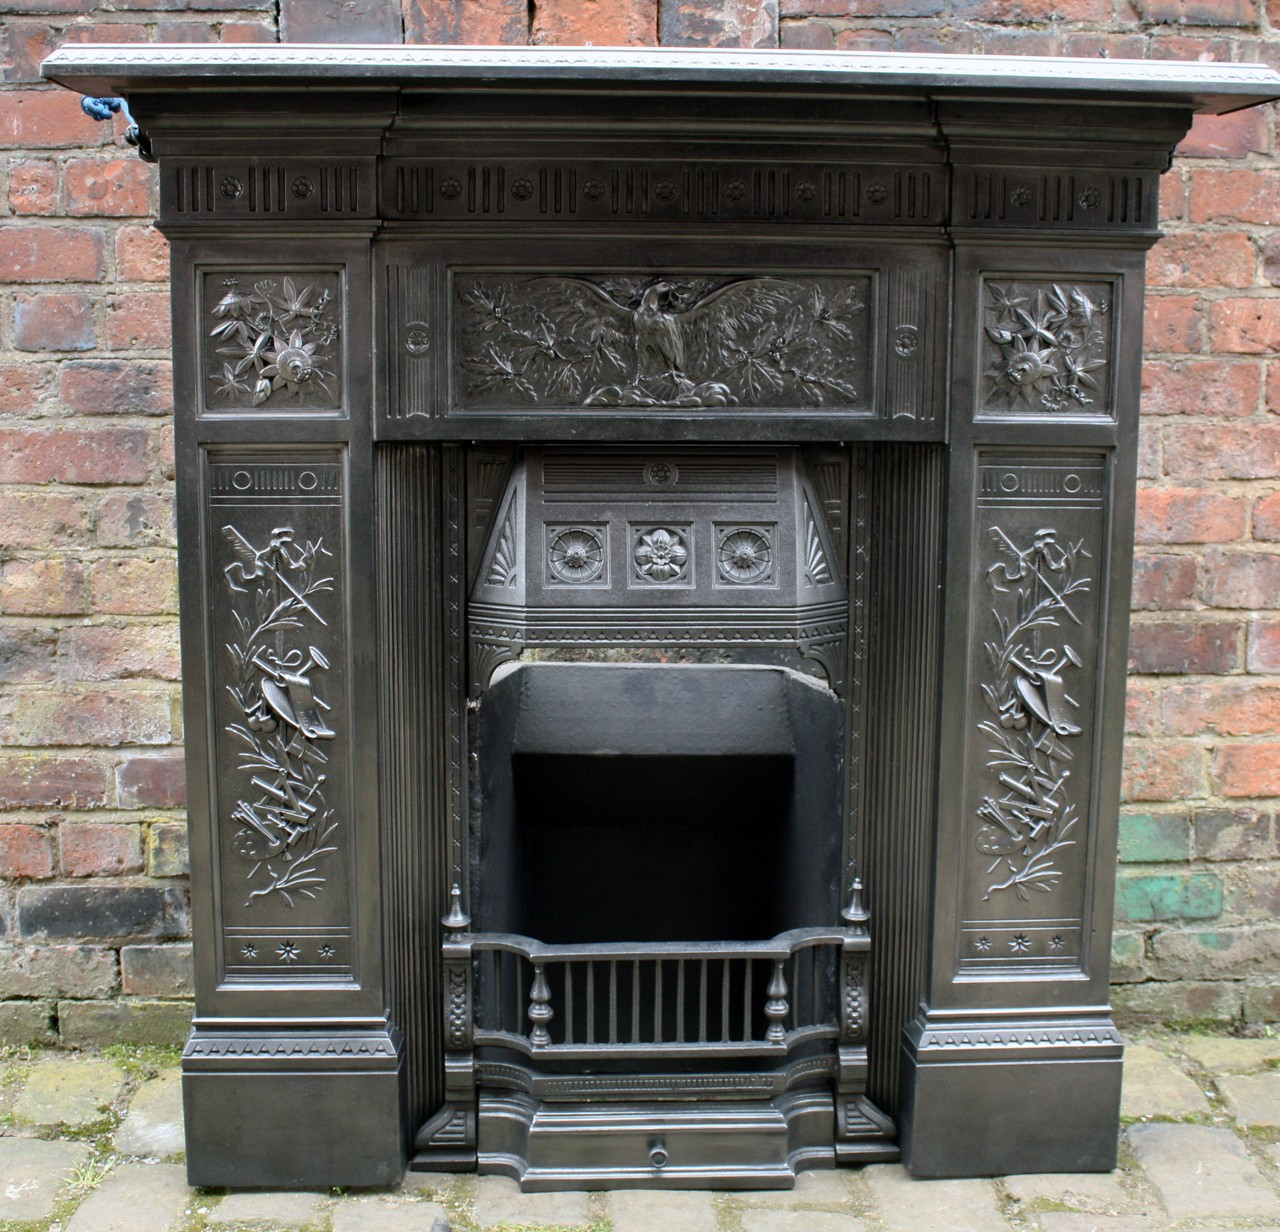 The Arts combination fireplace.